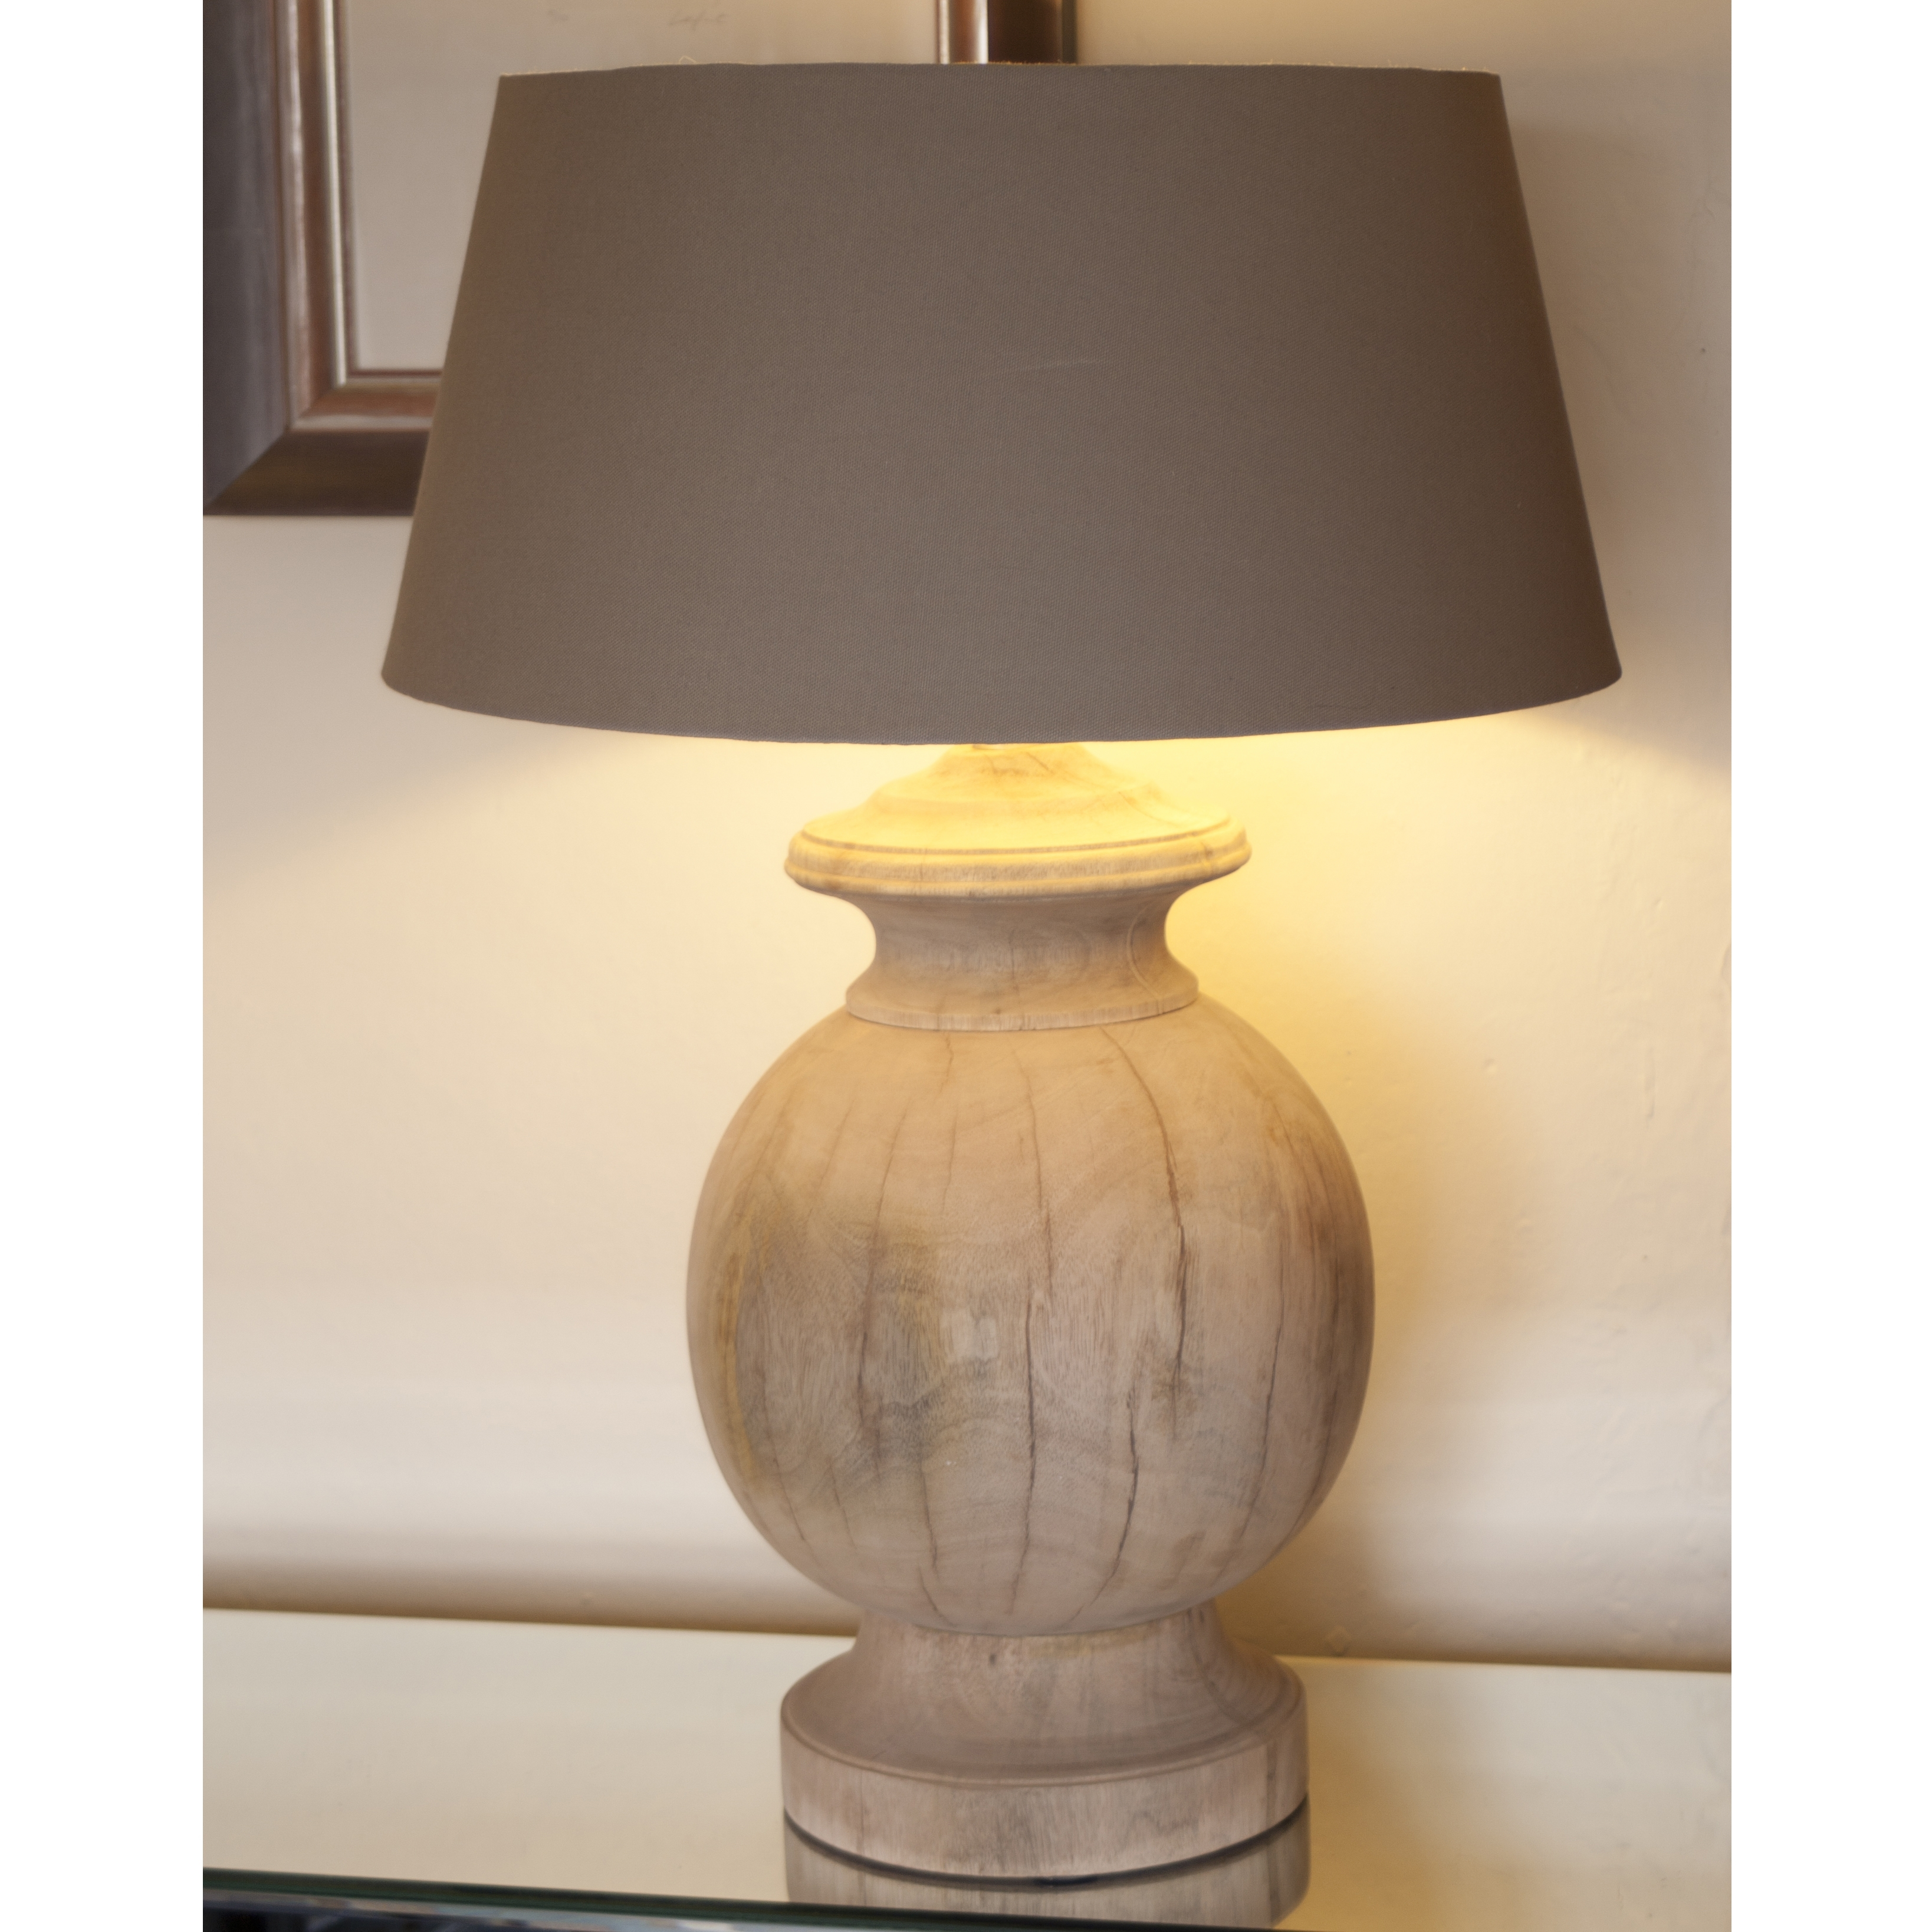 Inspiration about Lamp : Wood Table Lamps For Bedroom Wooden Living Roomdavid Pertaining To Country Style Living Room Table Lamps (#13 of 15)